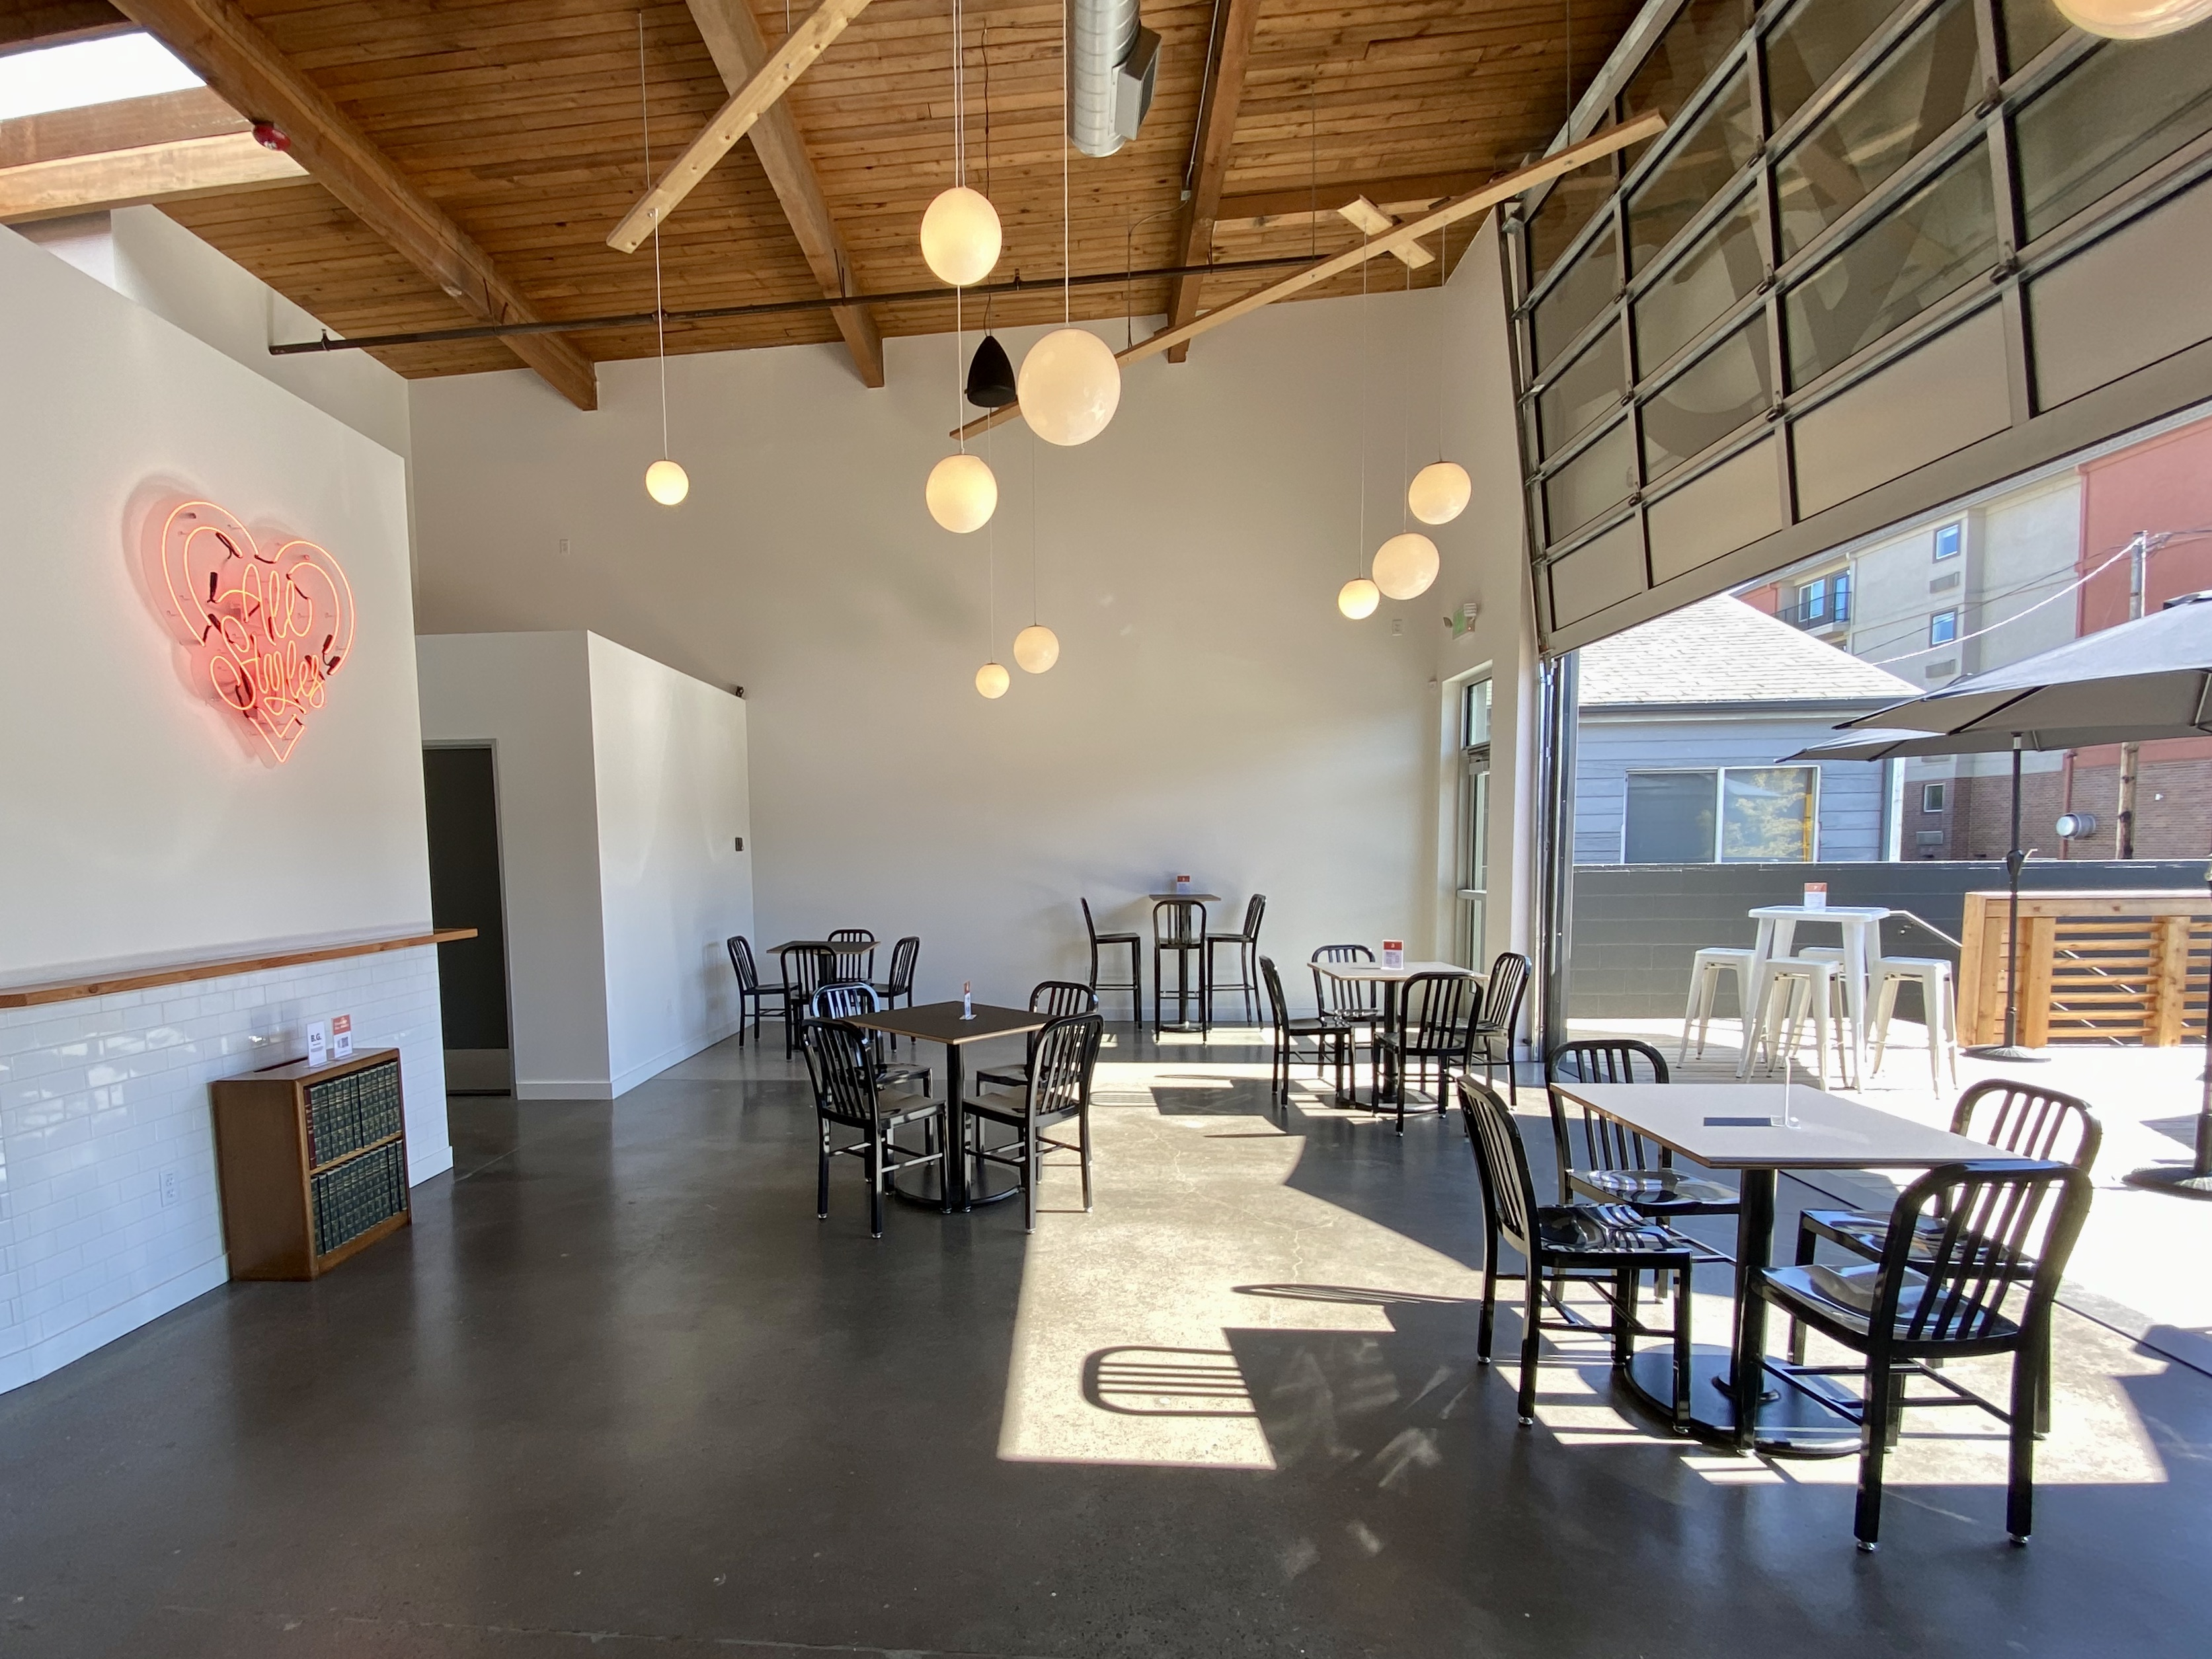 Inside seating, all socially distanced with tall ceilings at Hammer & Stitch Brewing will make for a more inviting space during the pandemic.